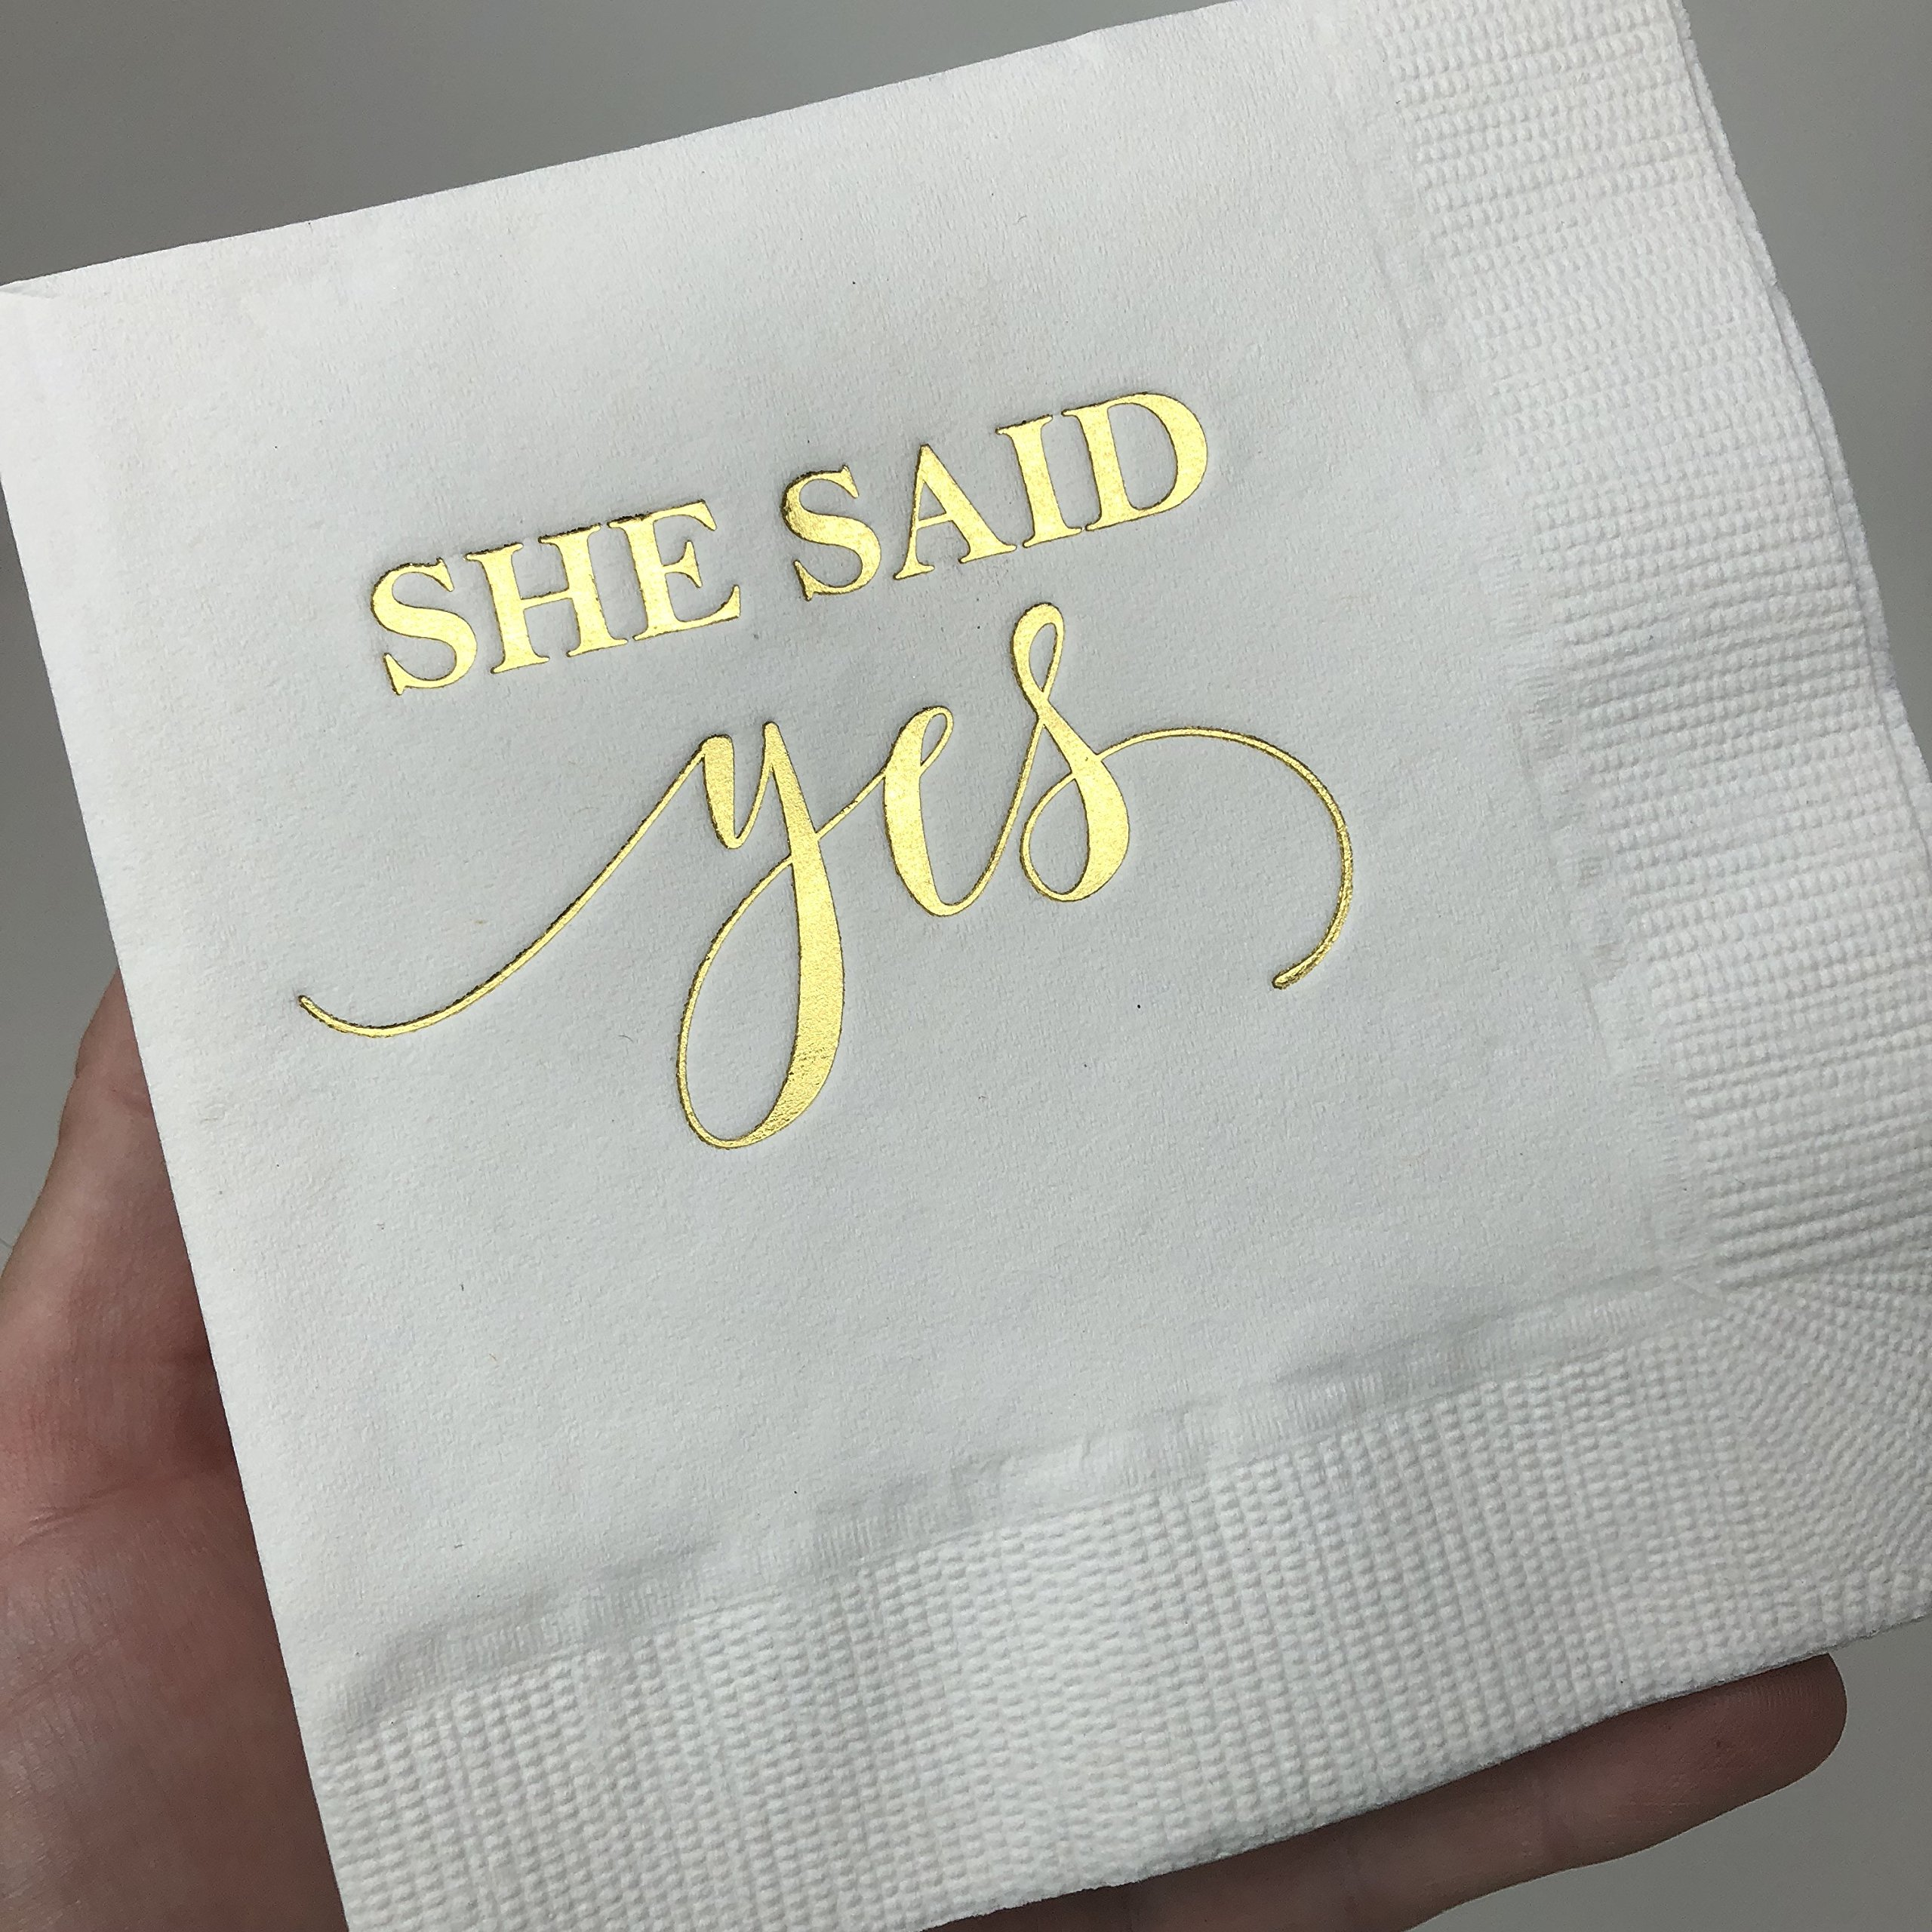 She Said Yes Bridal Shower Napkins, Gold Foil Napkins for Bridal Shower, Engagement Party Decor, White and Gold Fold, Cocktail Napkins, Beverage Napkins, She Said Yes